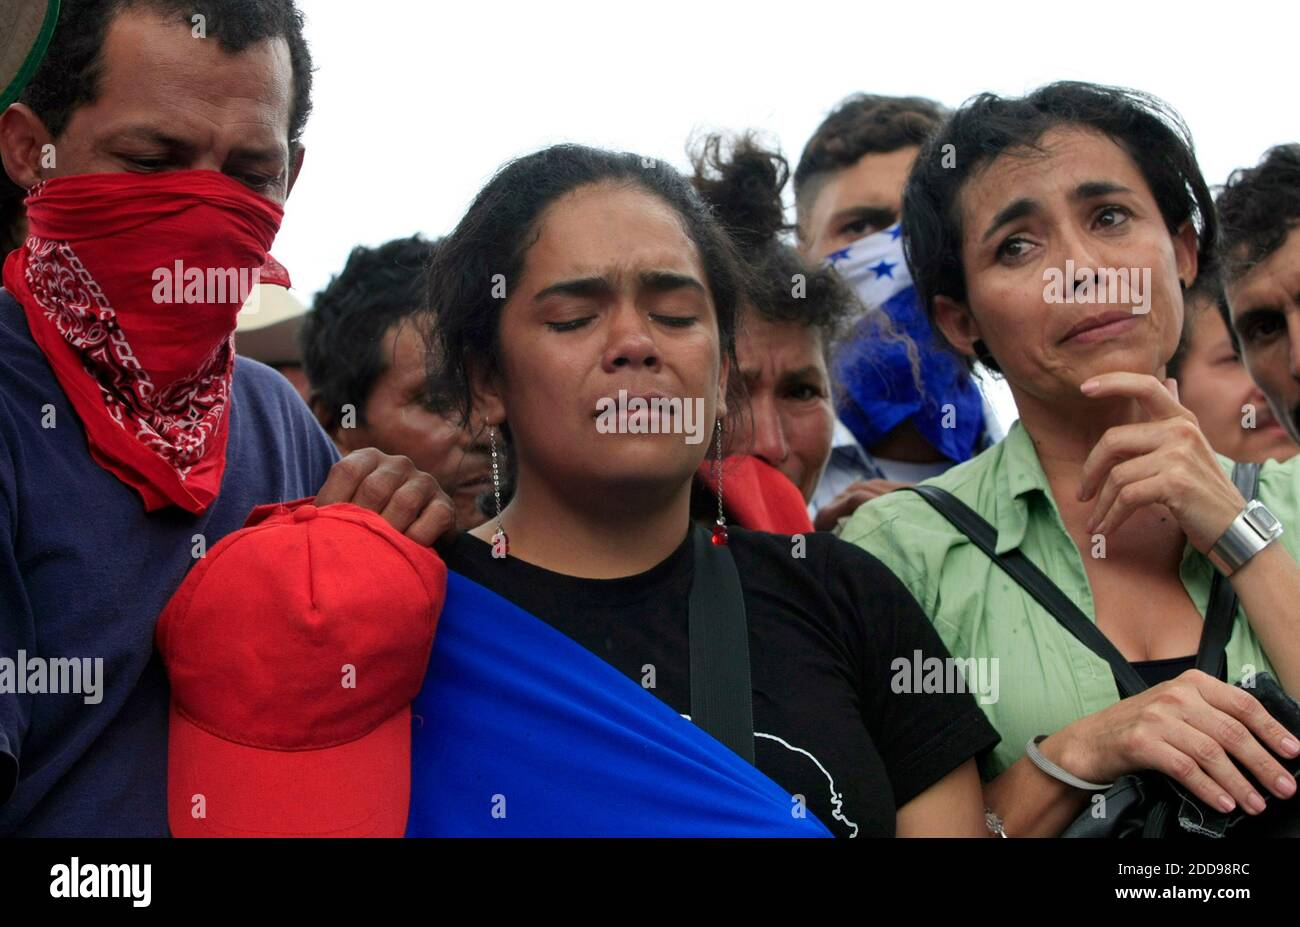 NO FILM, NO VIDEO, NO TV, NO DOCUMENTARY - Supporters of ousted Honduran president Manuel Zelaya, prayed and mourn the death of Pedro Magdiel Munoz Salvador, 23, who was found stabbed to death outside Paraiso, Honduras, Saturday, July 25, 2009. The supporters accused the Honduran Army of Salvador's death. Photo by Pedro Portal/EL Nuevo Herald/Miami Herald/MCT/ABACAPRESS.COM Stock Photo